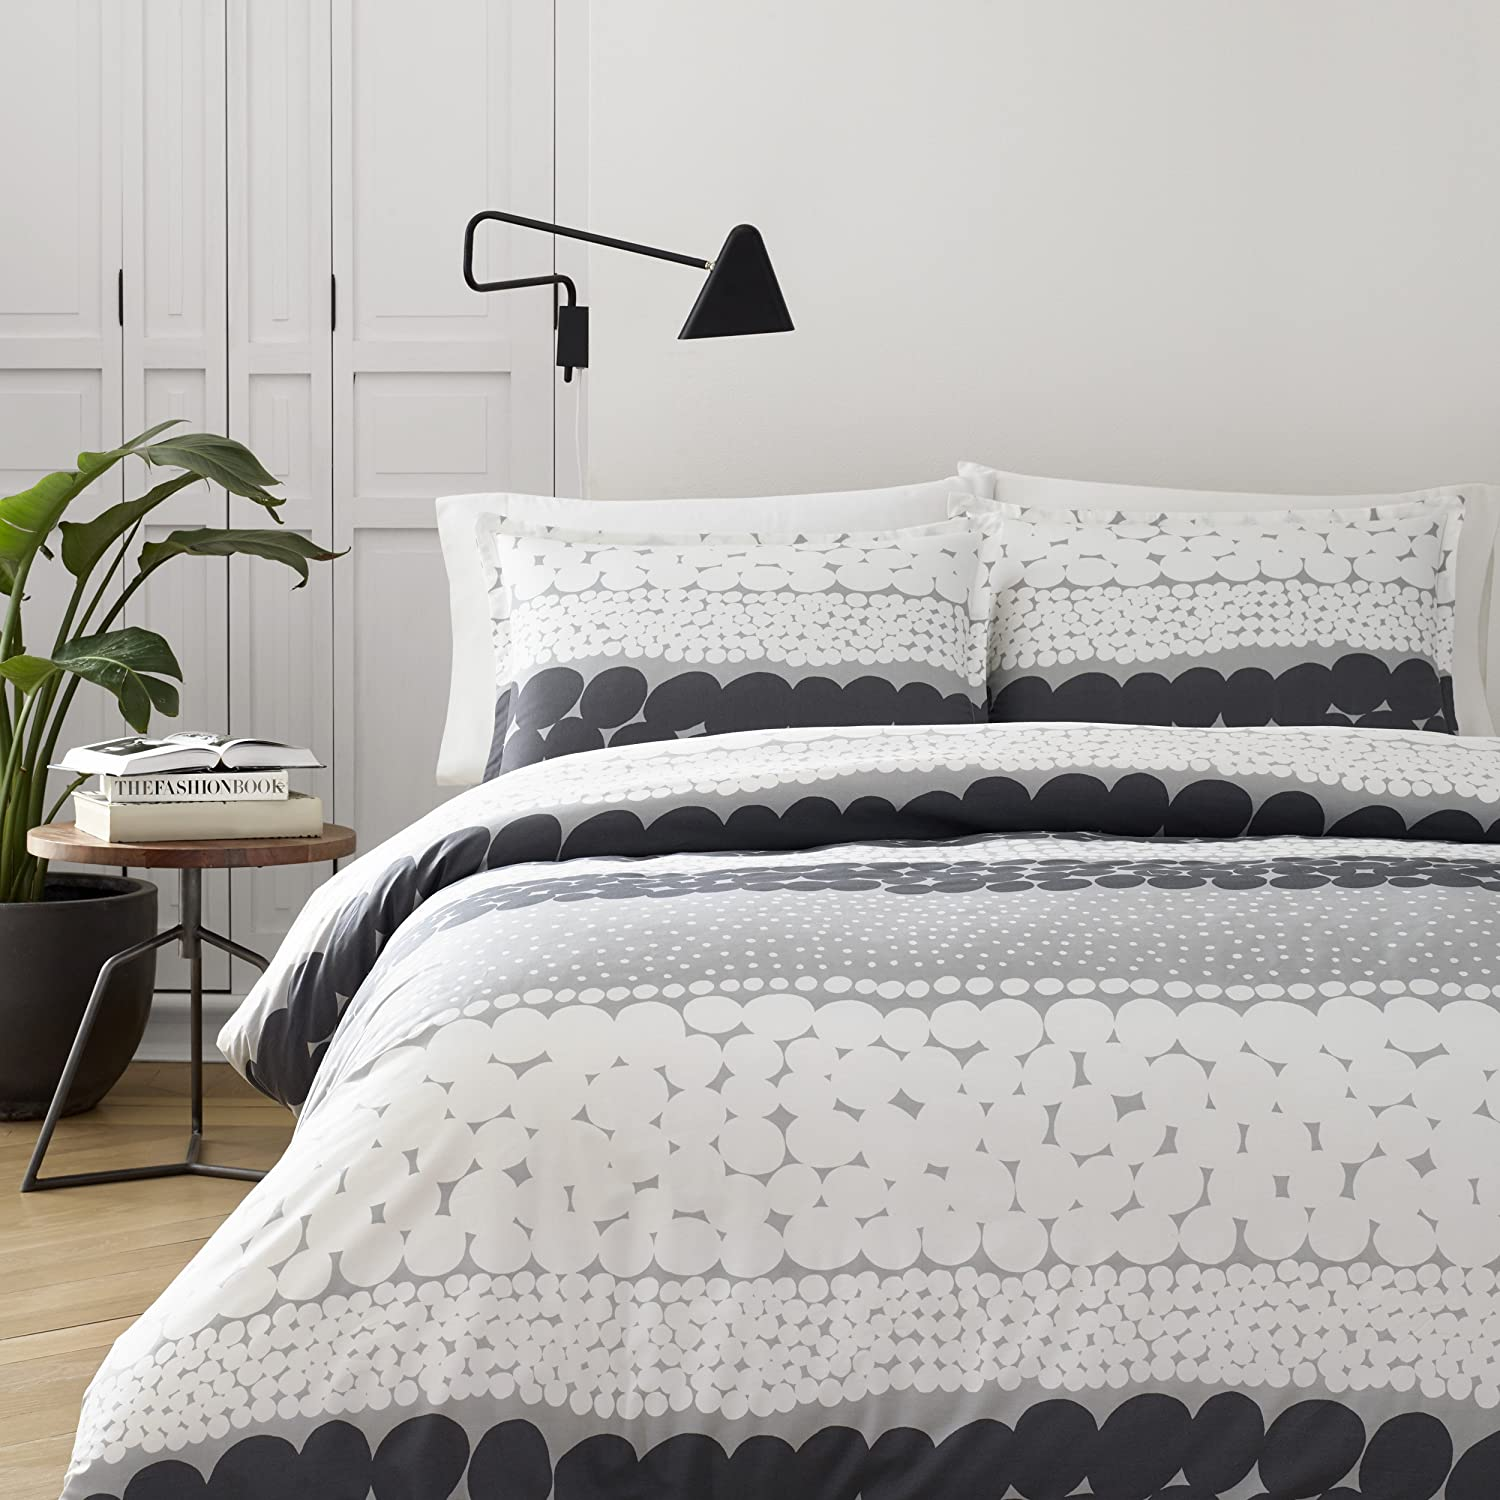 Marimekko 221446 Jurmo Duvet Cover Set, Full/Queen, Grey / White